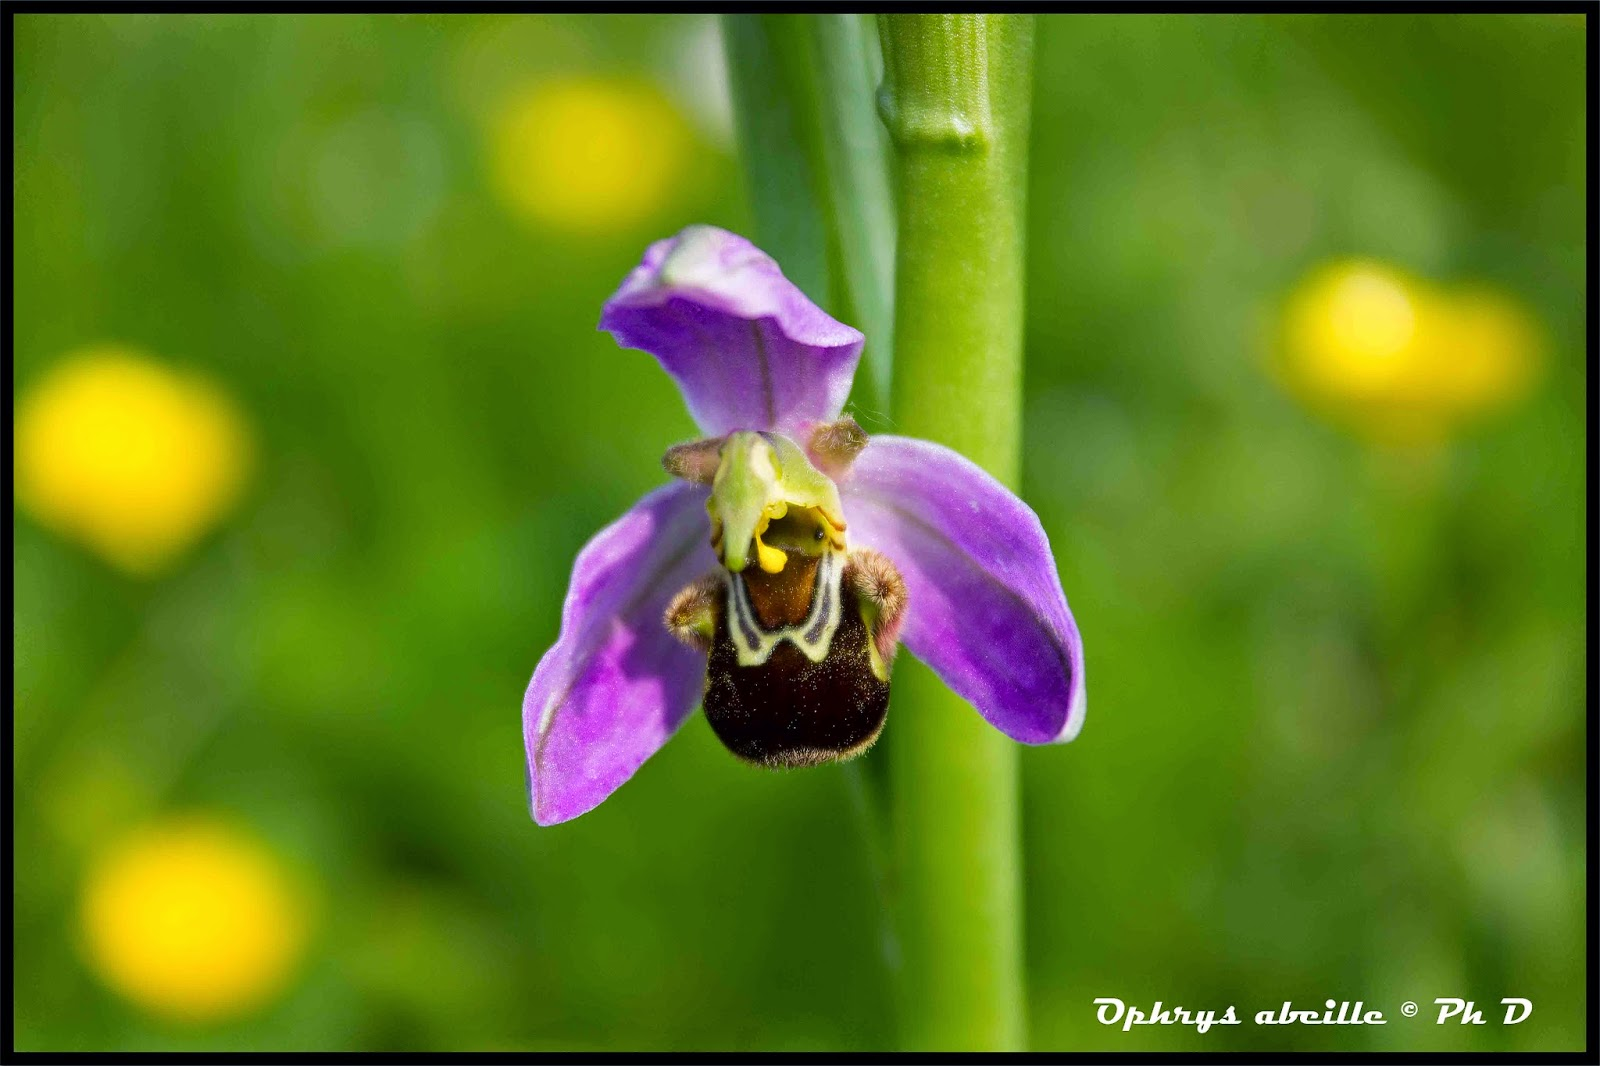 orchidee sauvage espece protegee